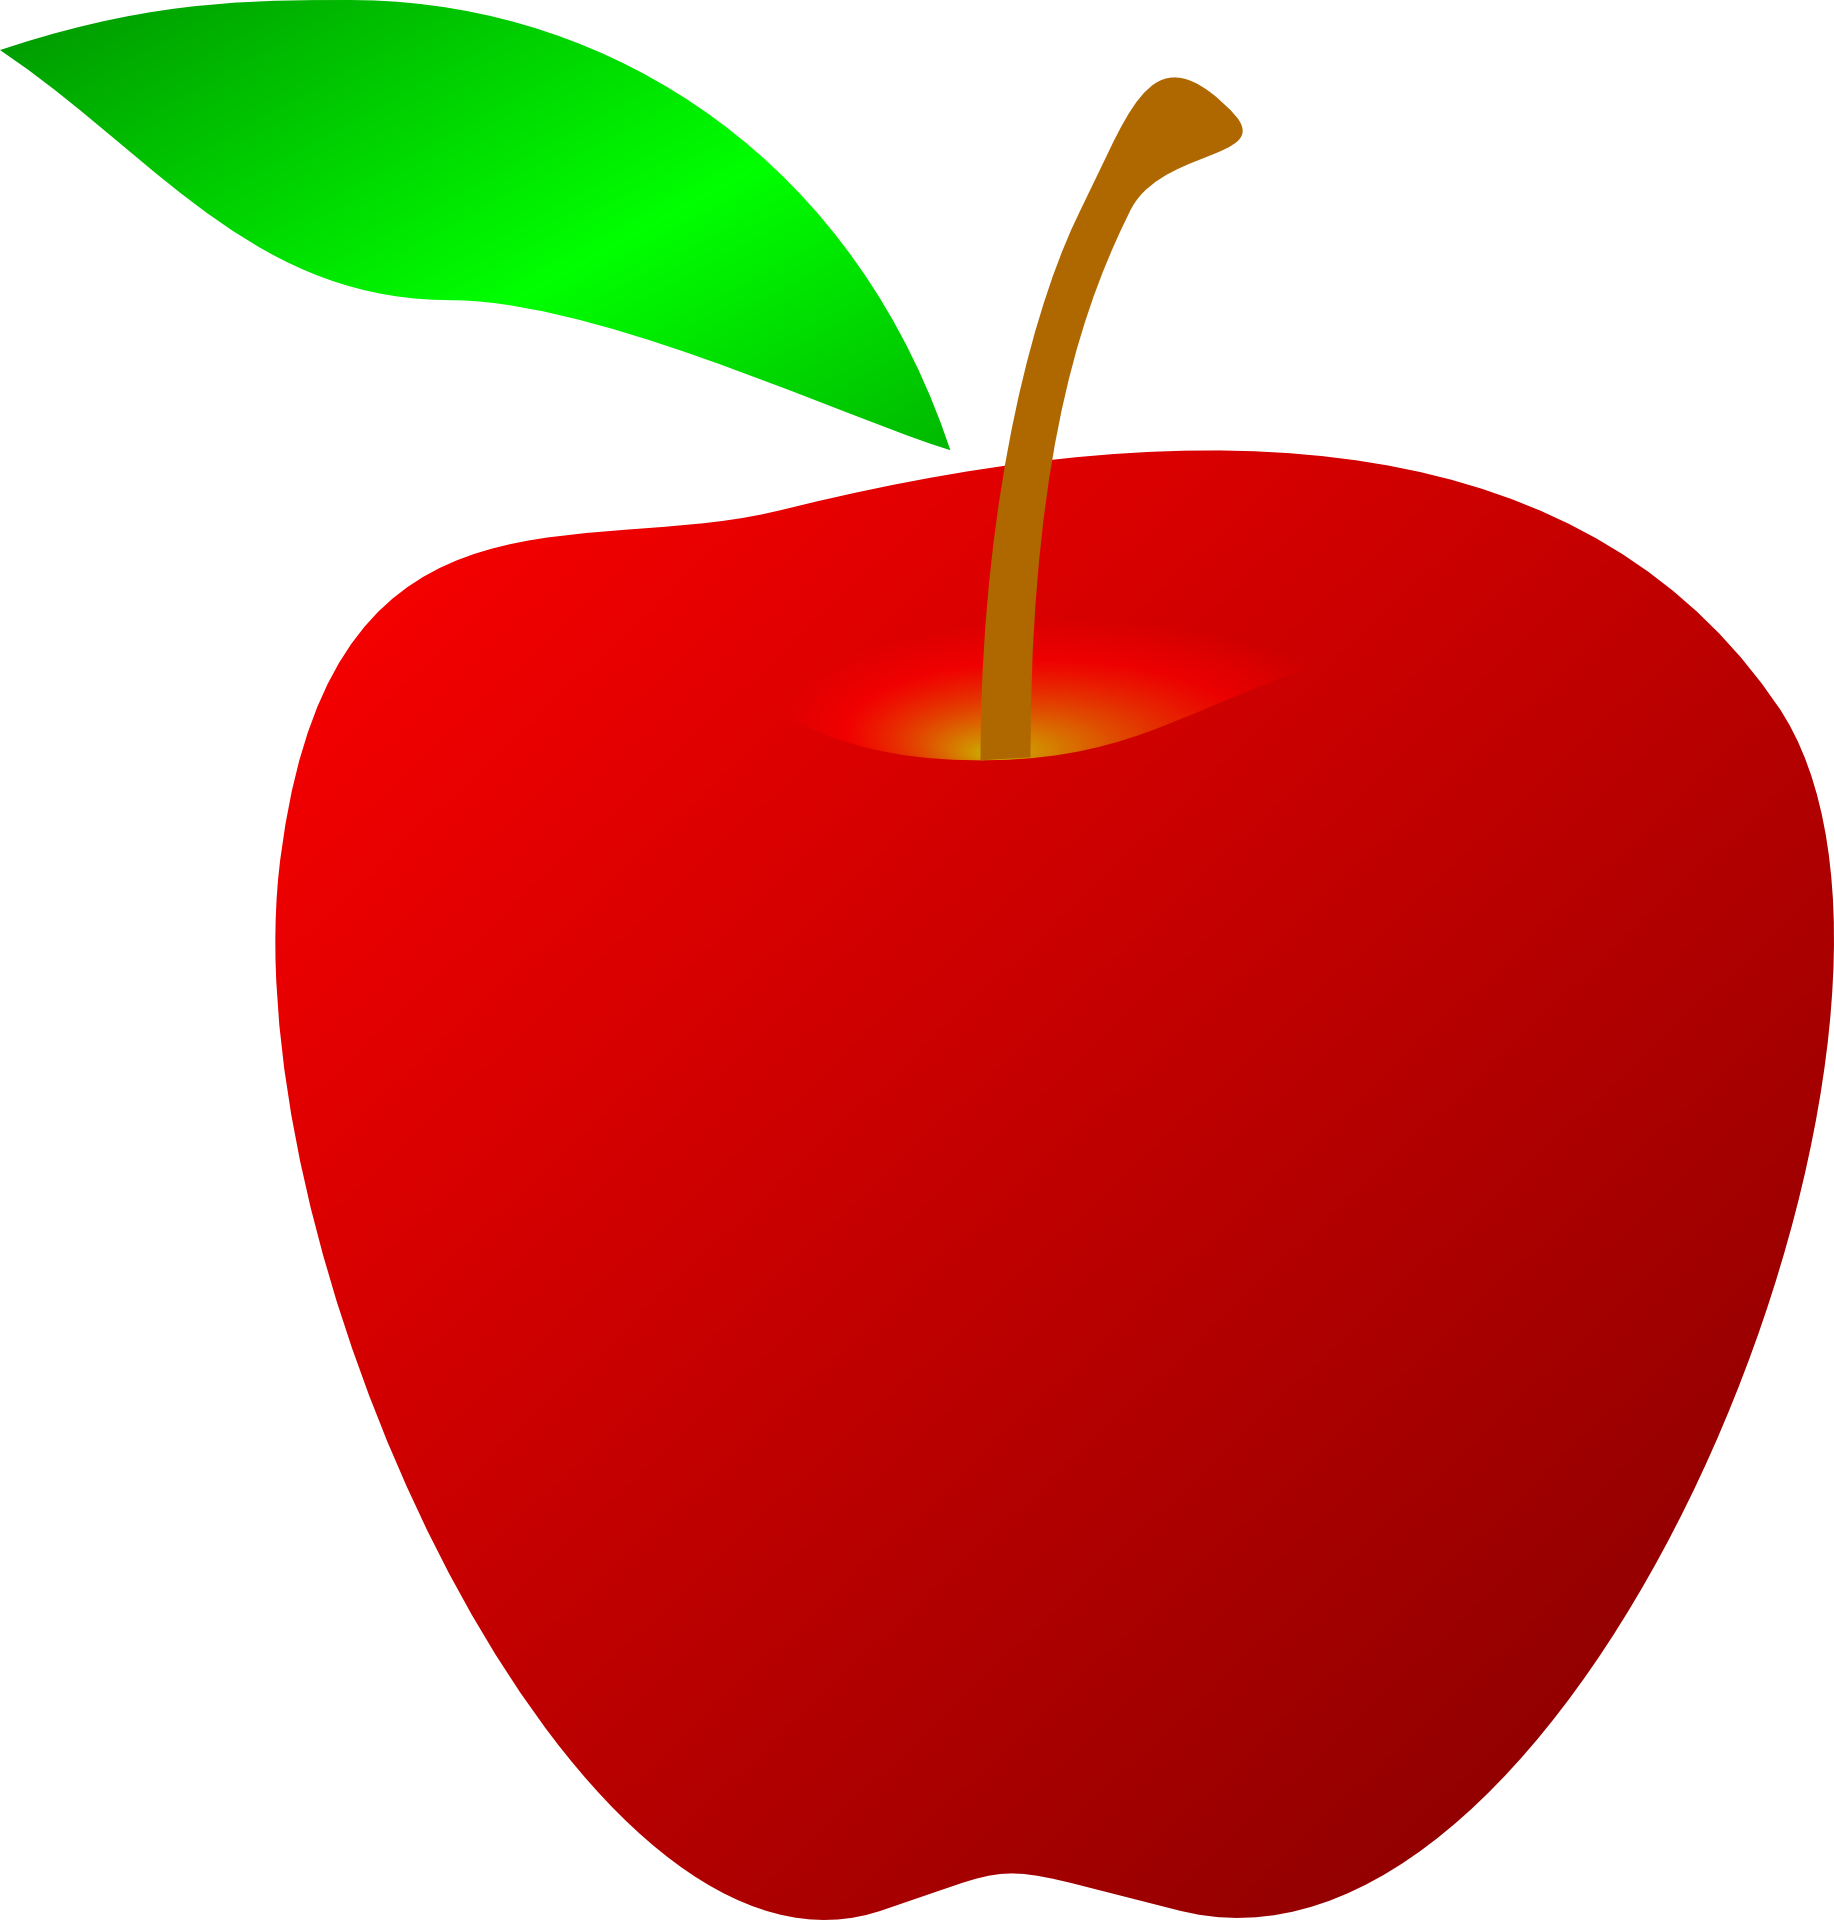 Apples drawing png. Of red apple with